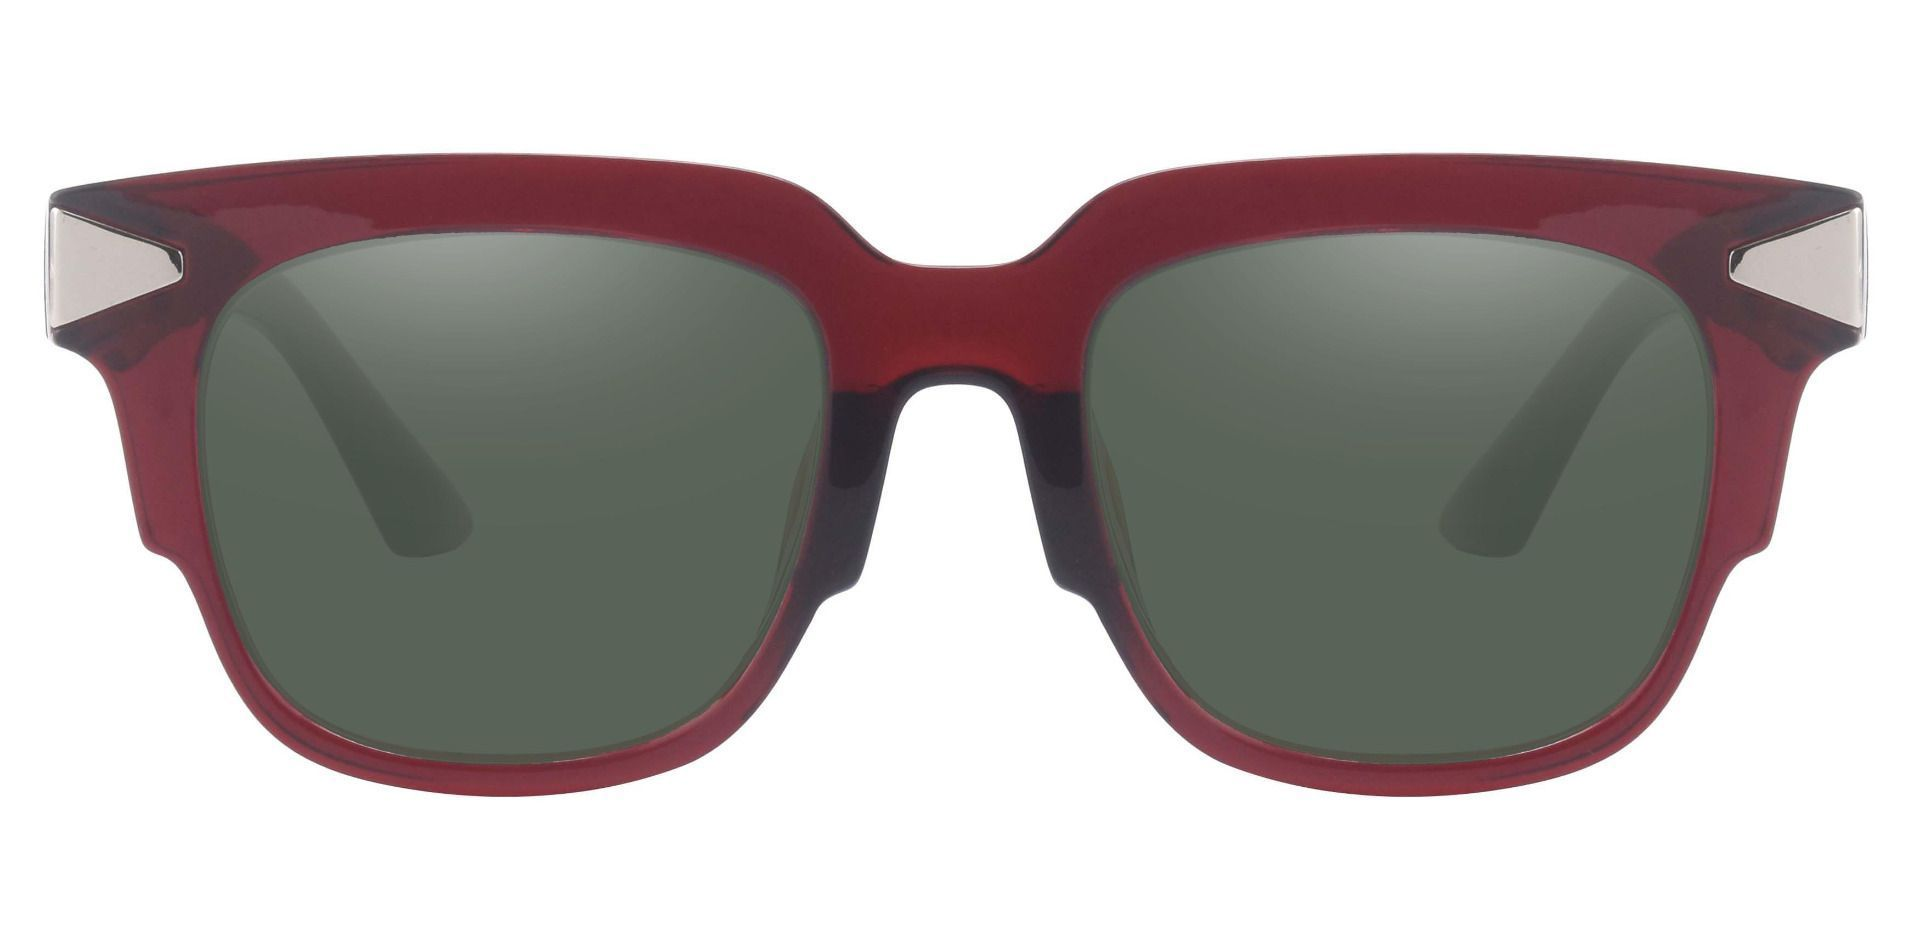 Ardent Square Prescription Sunglasses - Red Frame With Green Lenses